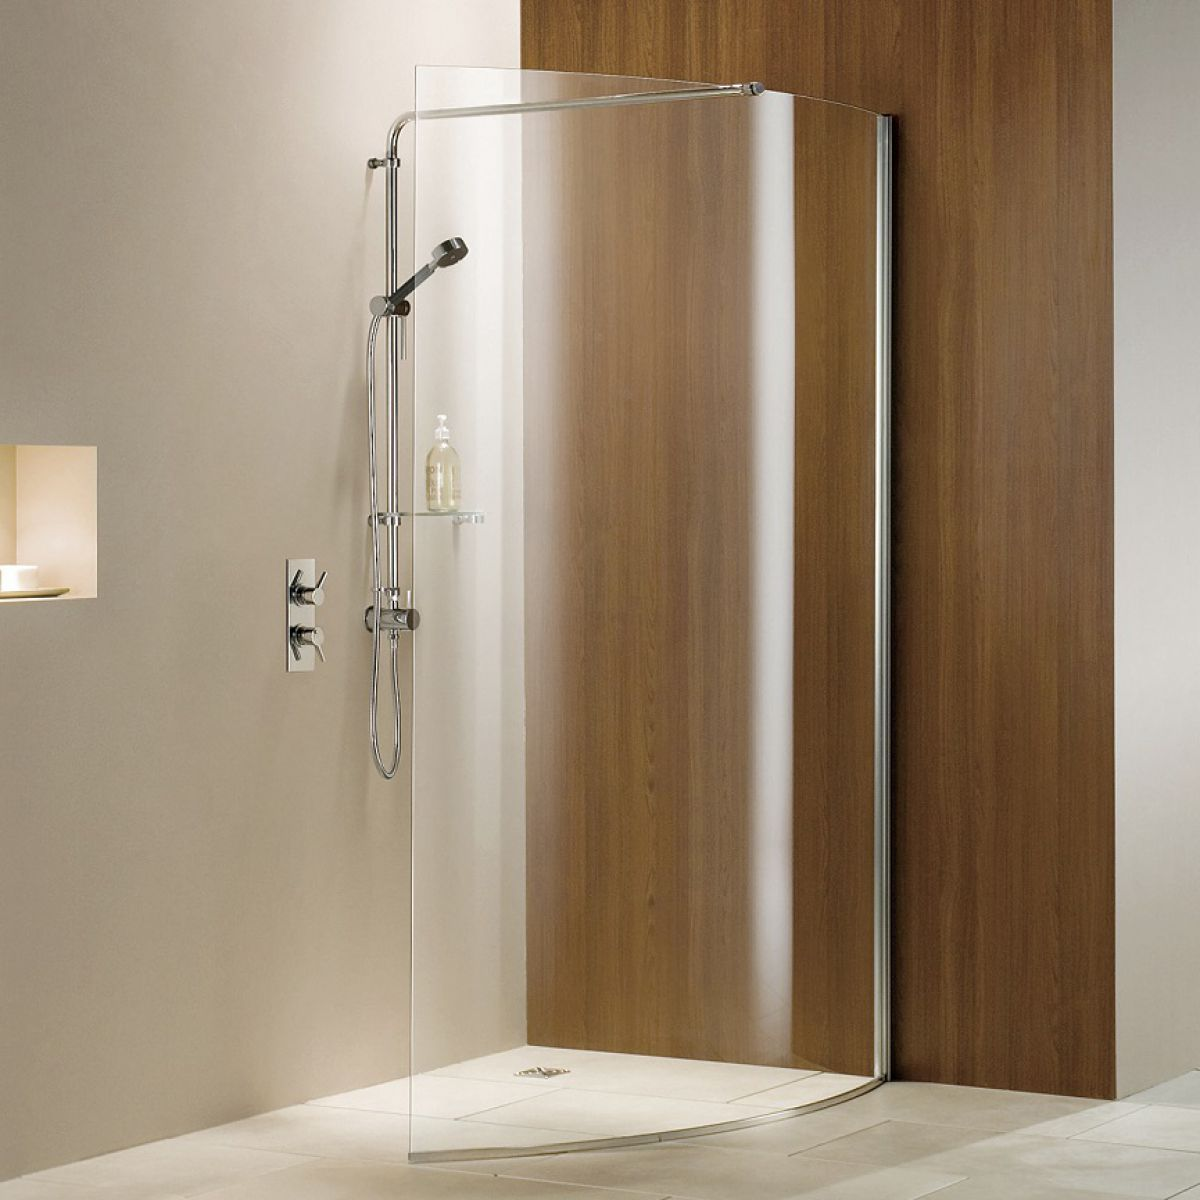 rooms roman linear wetroom panels panel embrace wet enclosure room corner shower showers